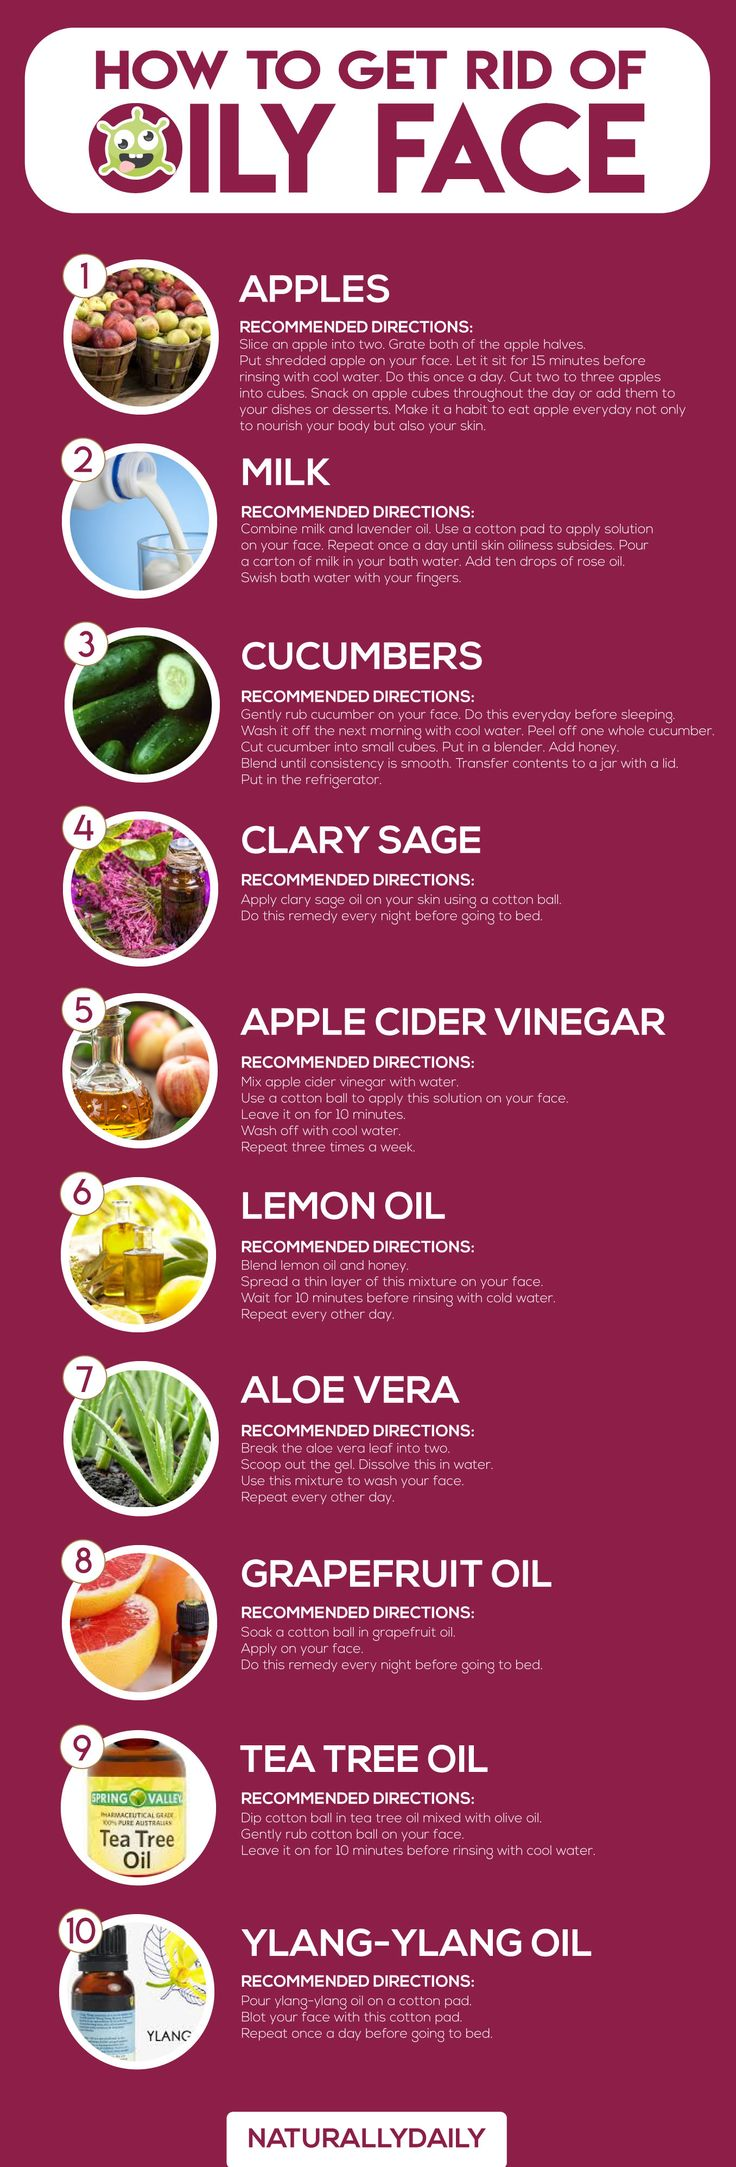 How to Get Rid of Oily Face: 10 Best Home Remedies